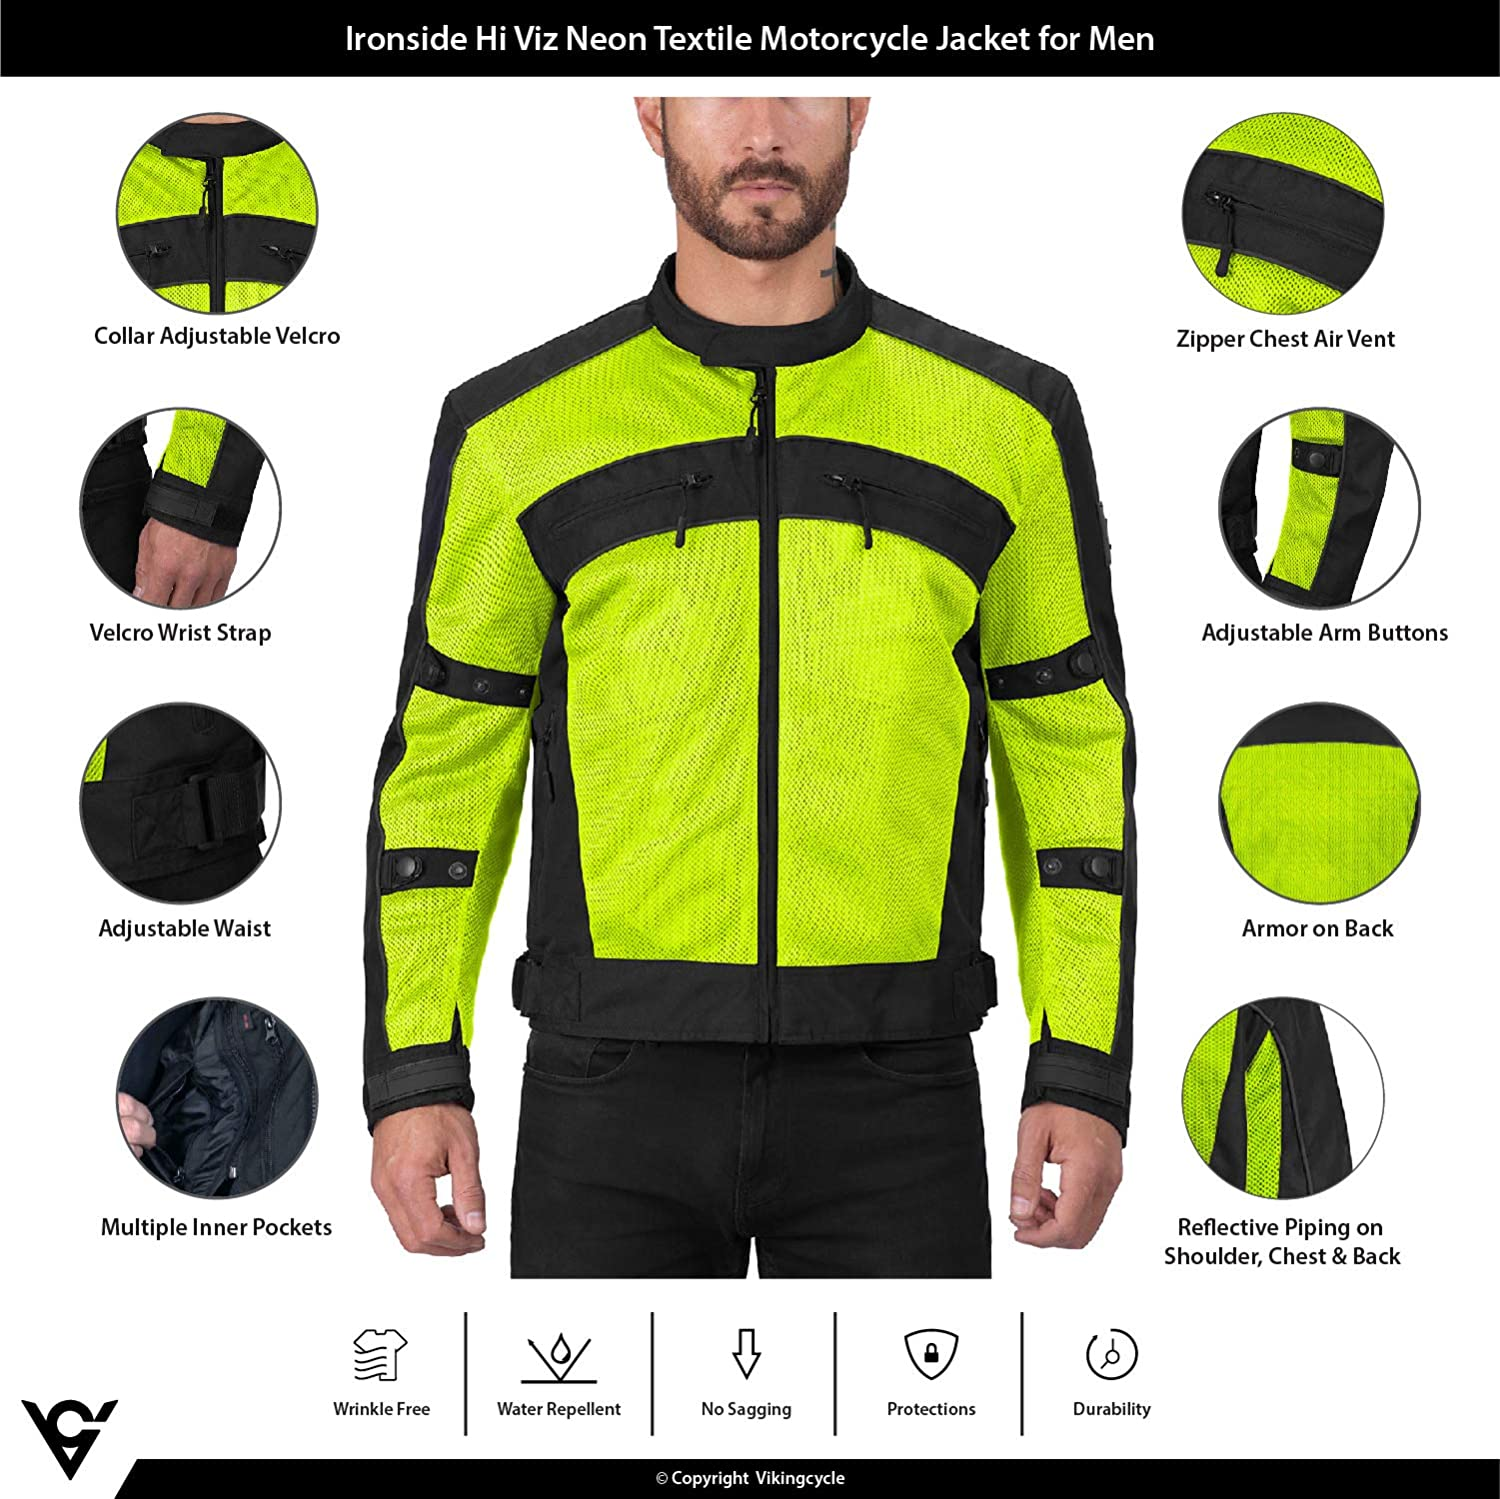 Viking Cycle Ironside Textile Mesh Motorcycle Jacket for Men Adjustable CE Approved Breathable Armor for Bikers